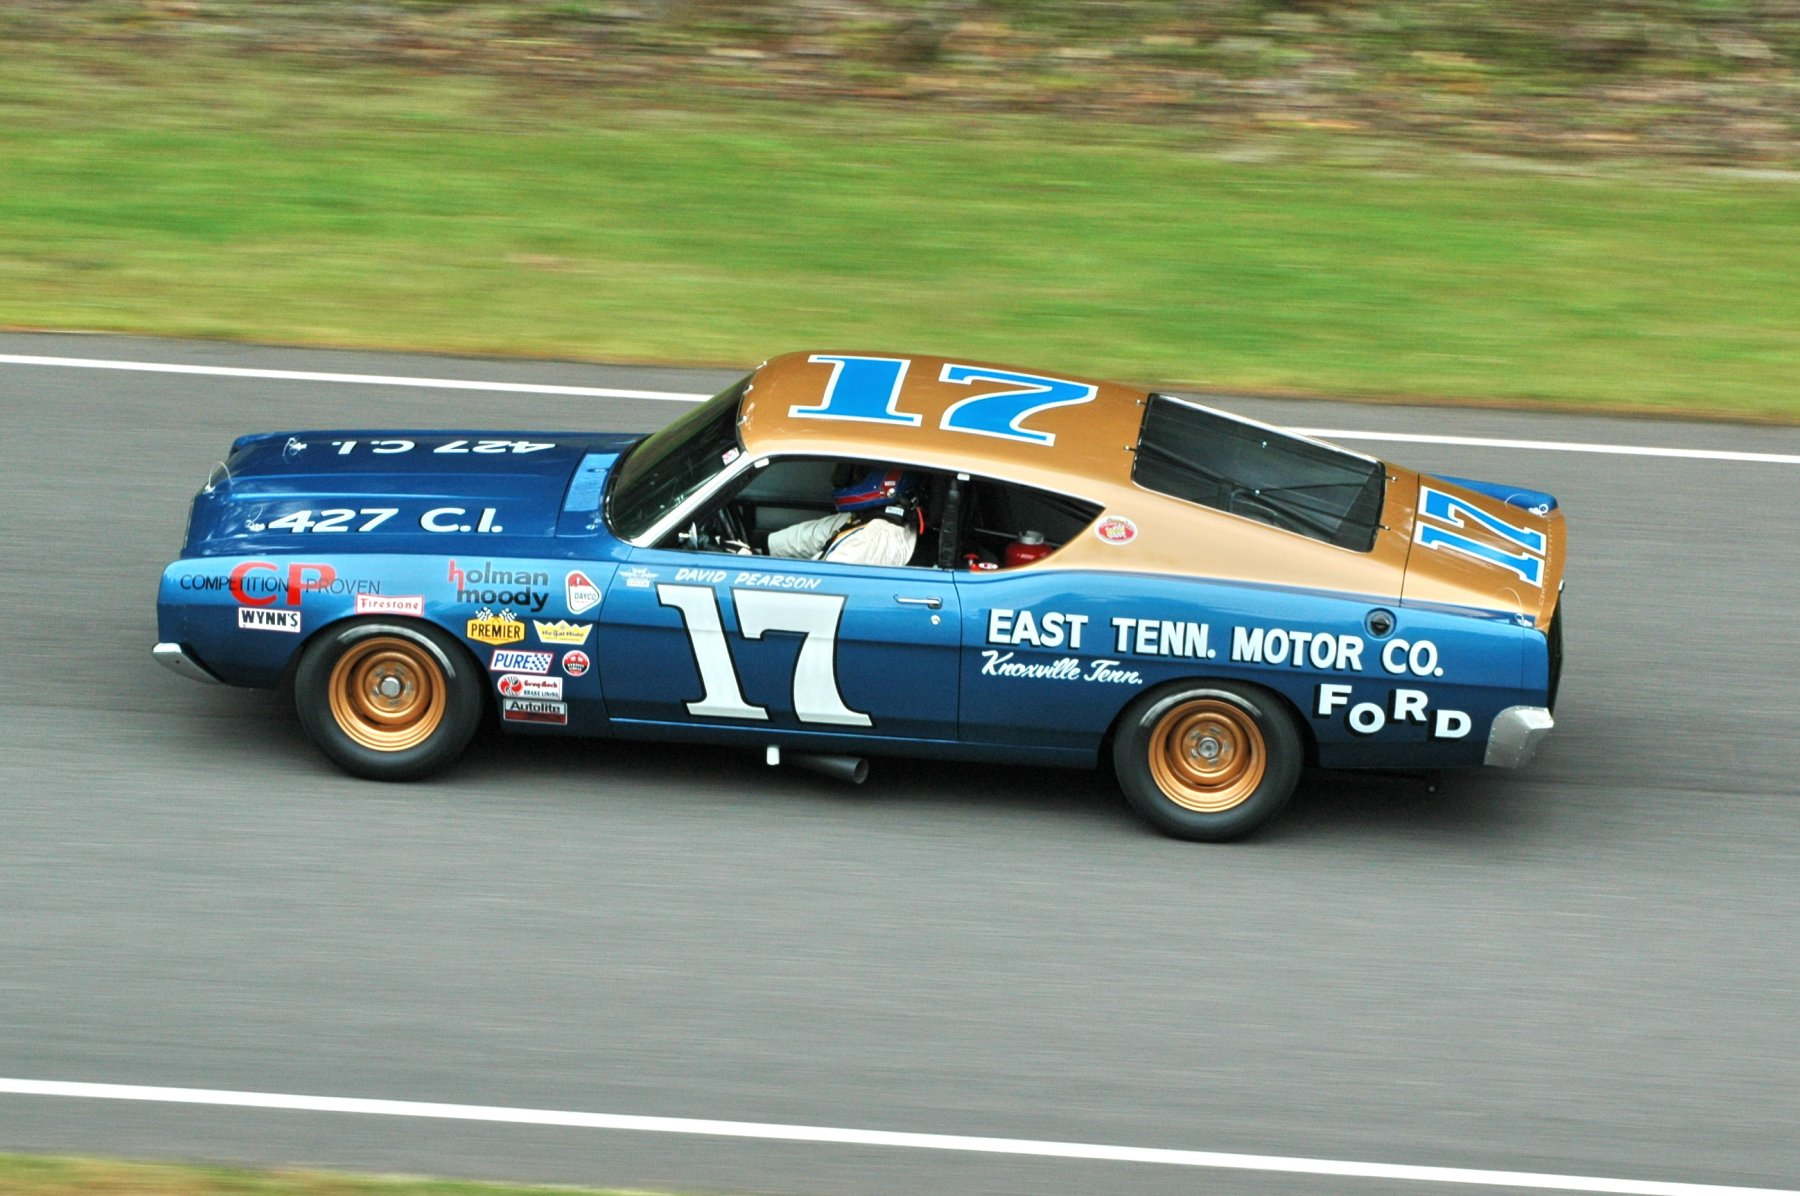 1968 Ford Torino Nascar Classic Race Racing Hot Rod Rods G